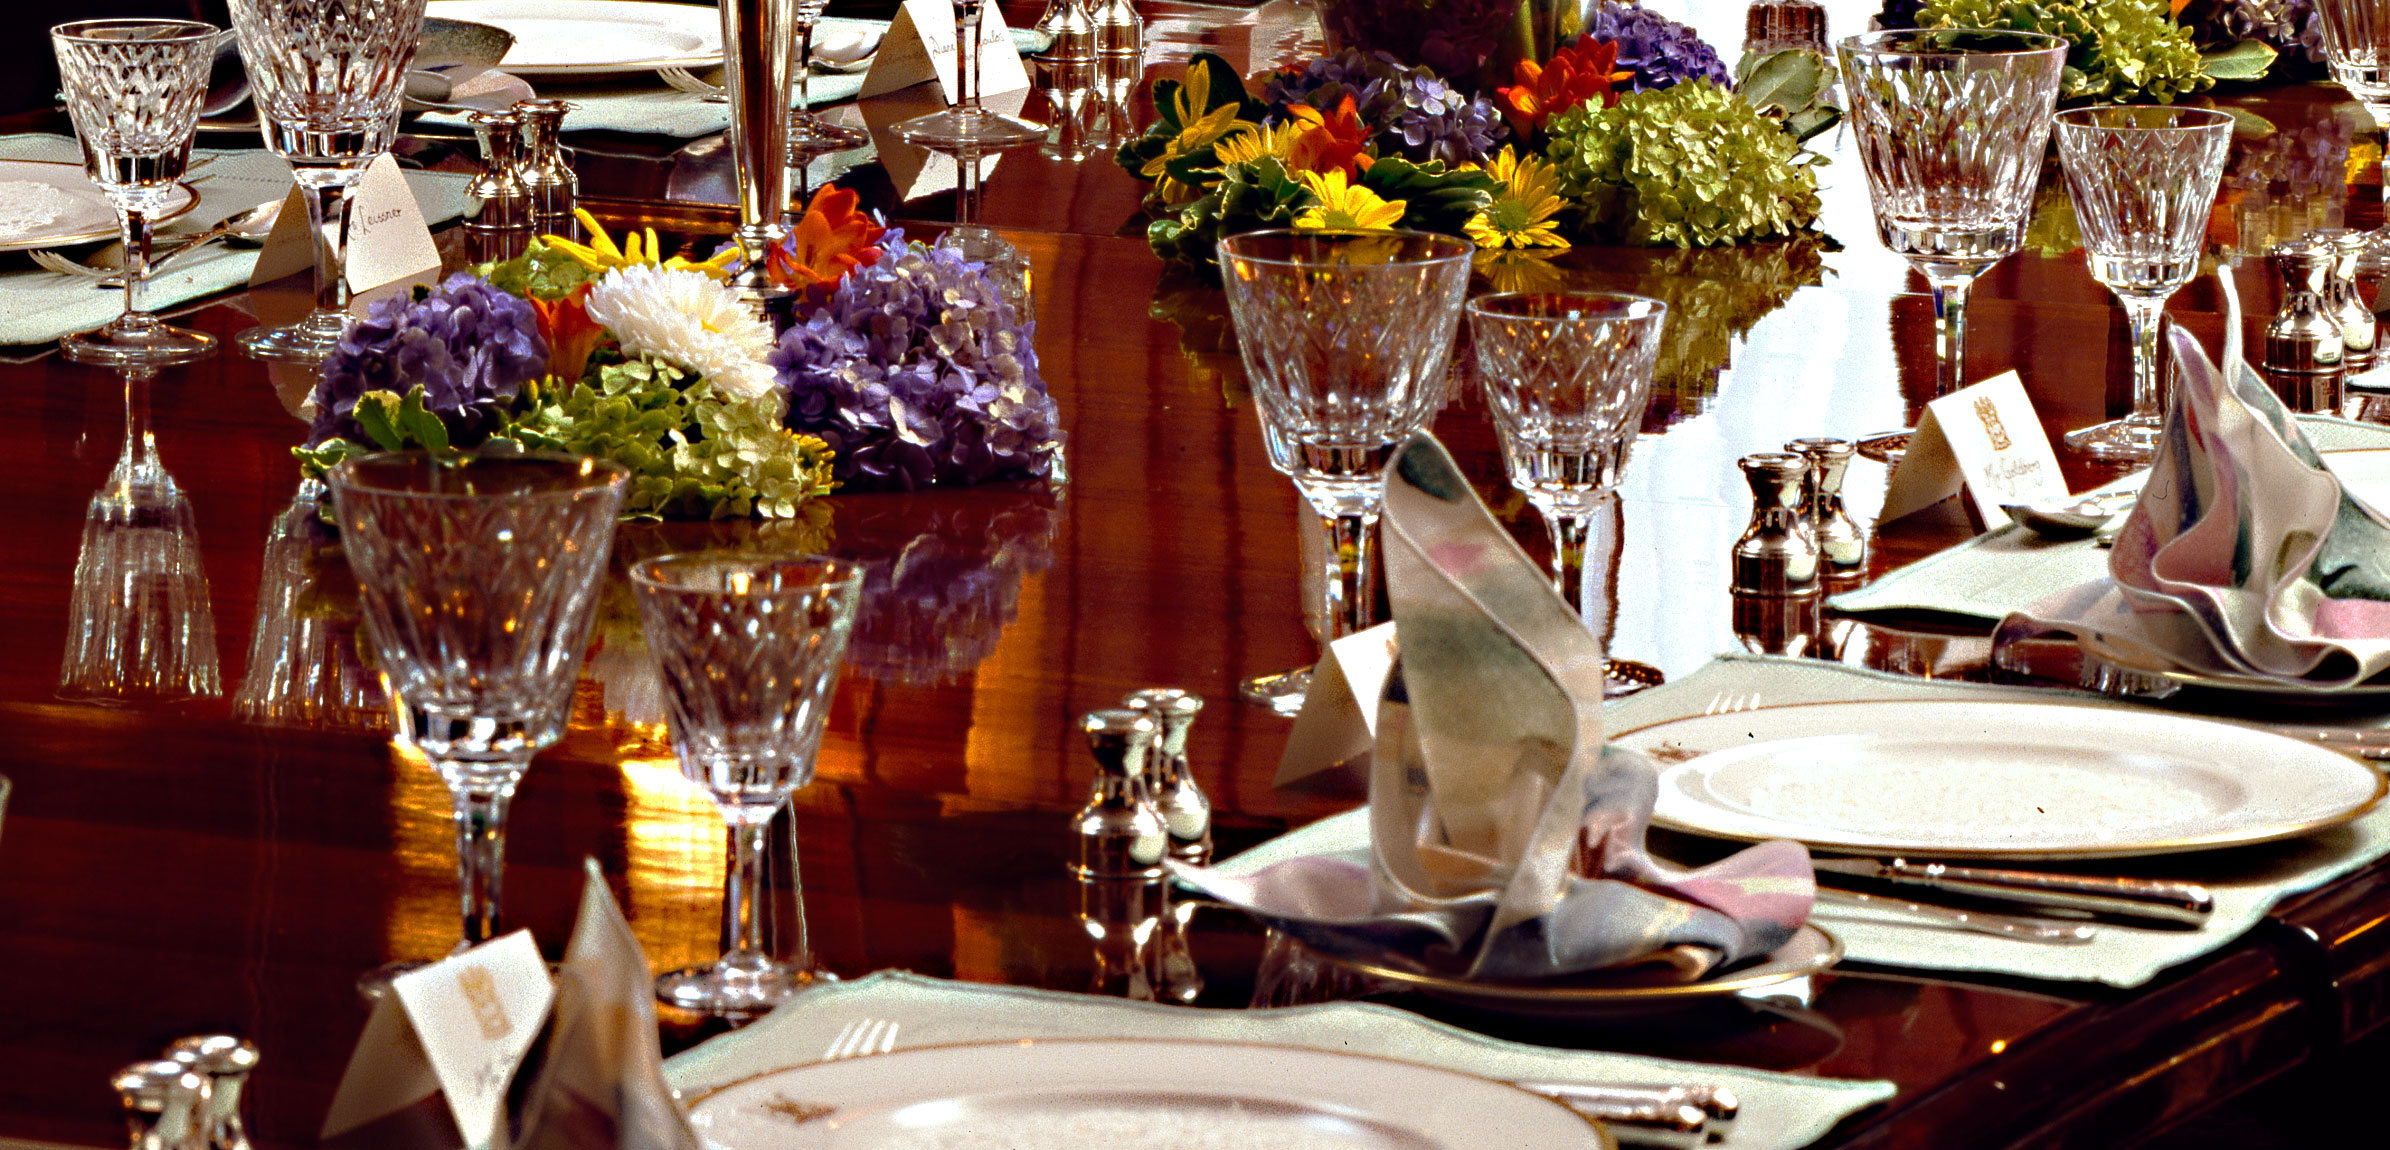 Banquet Table Setting Part - 43: #5 Table Centerpiece